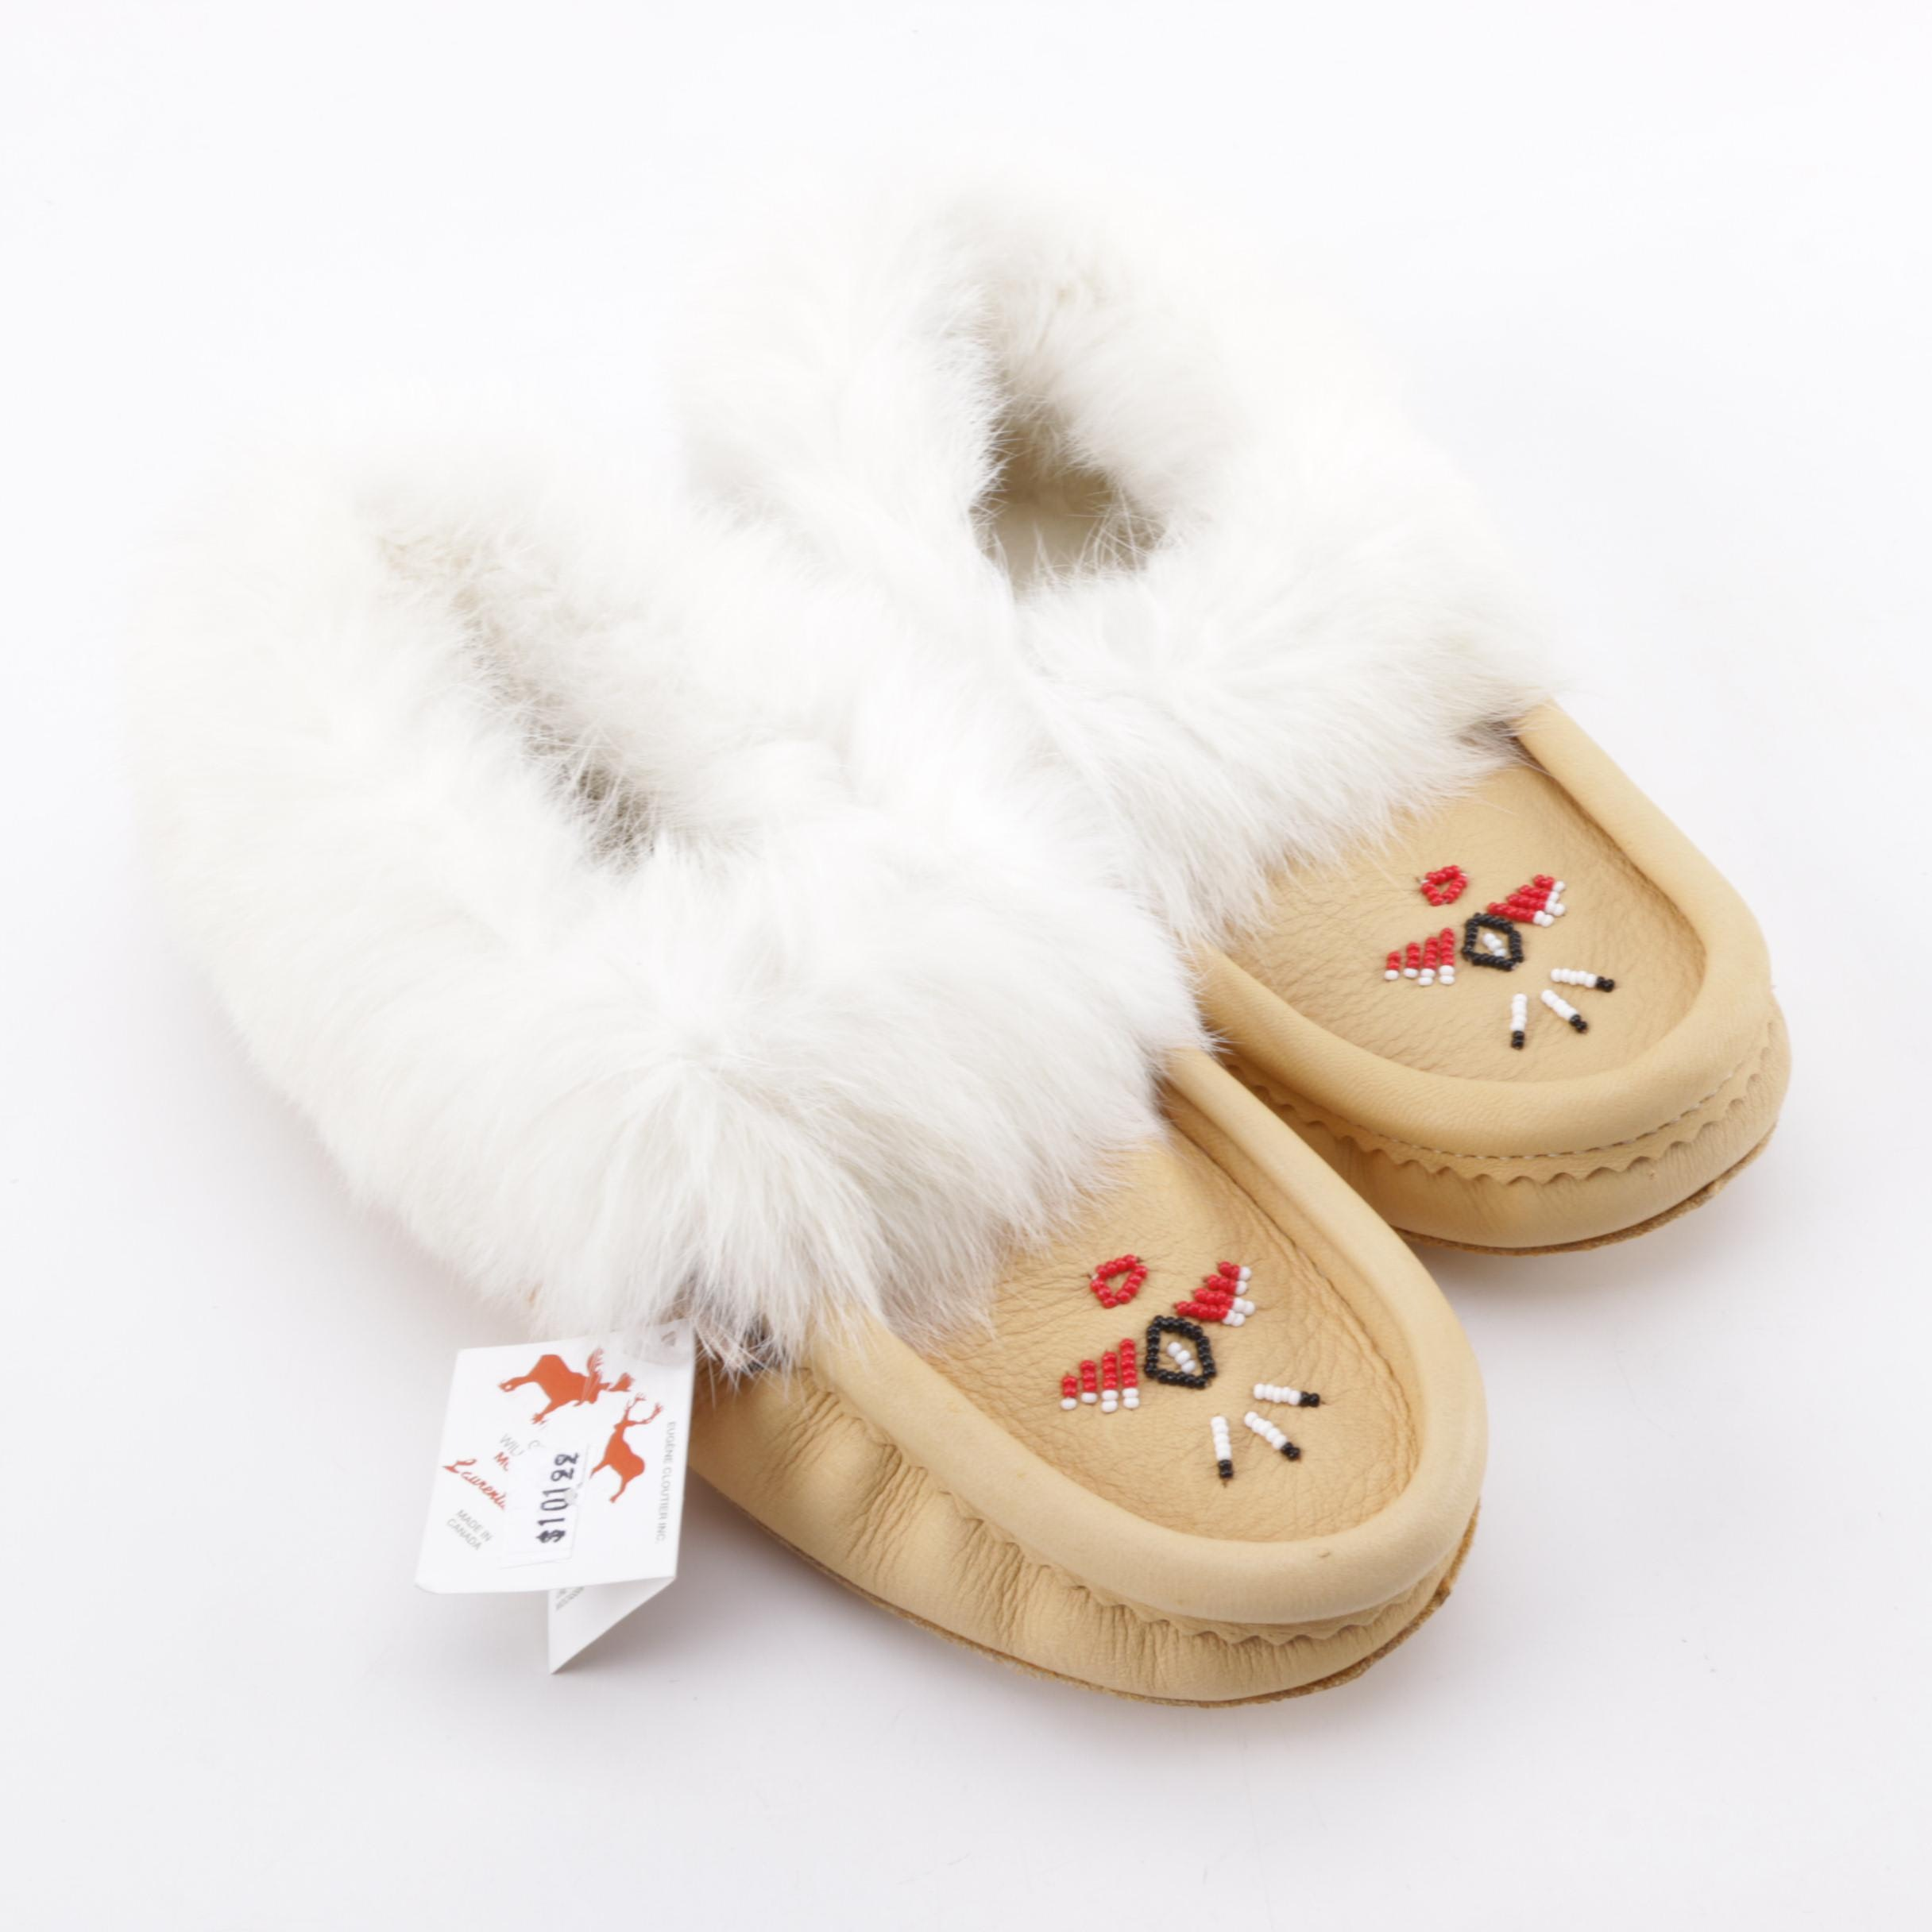 Laurentian Chief Leather and Rabbit Fur Moccasins